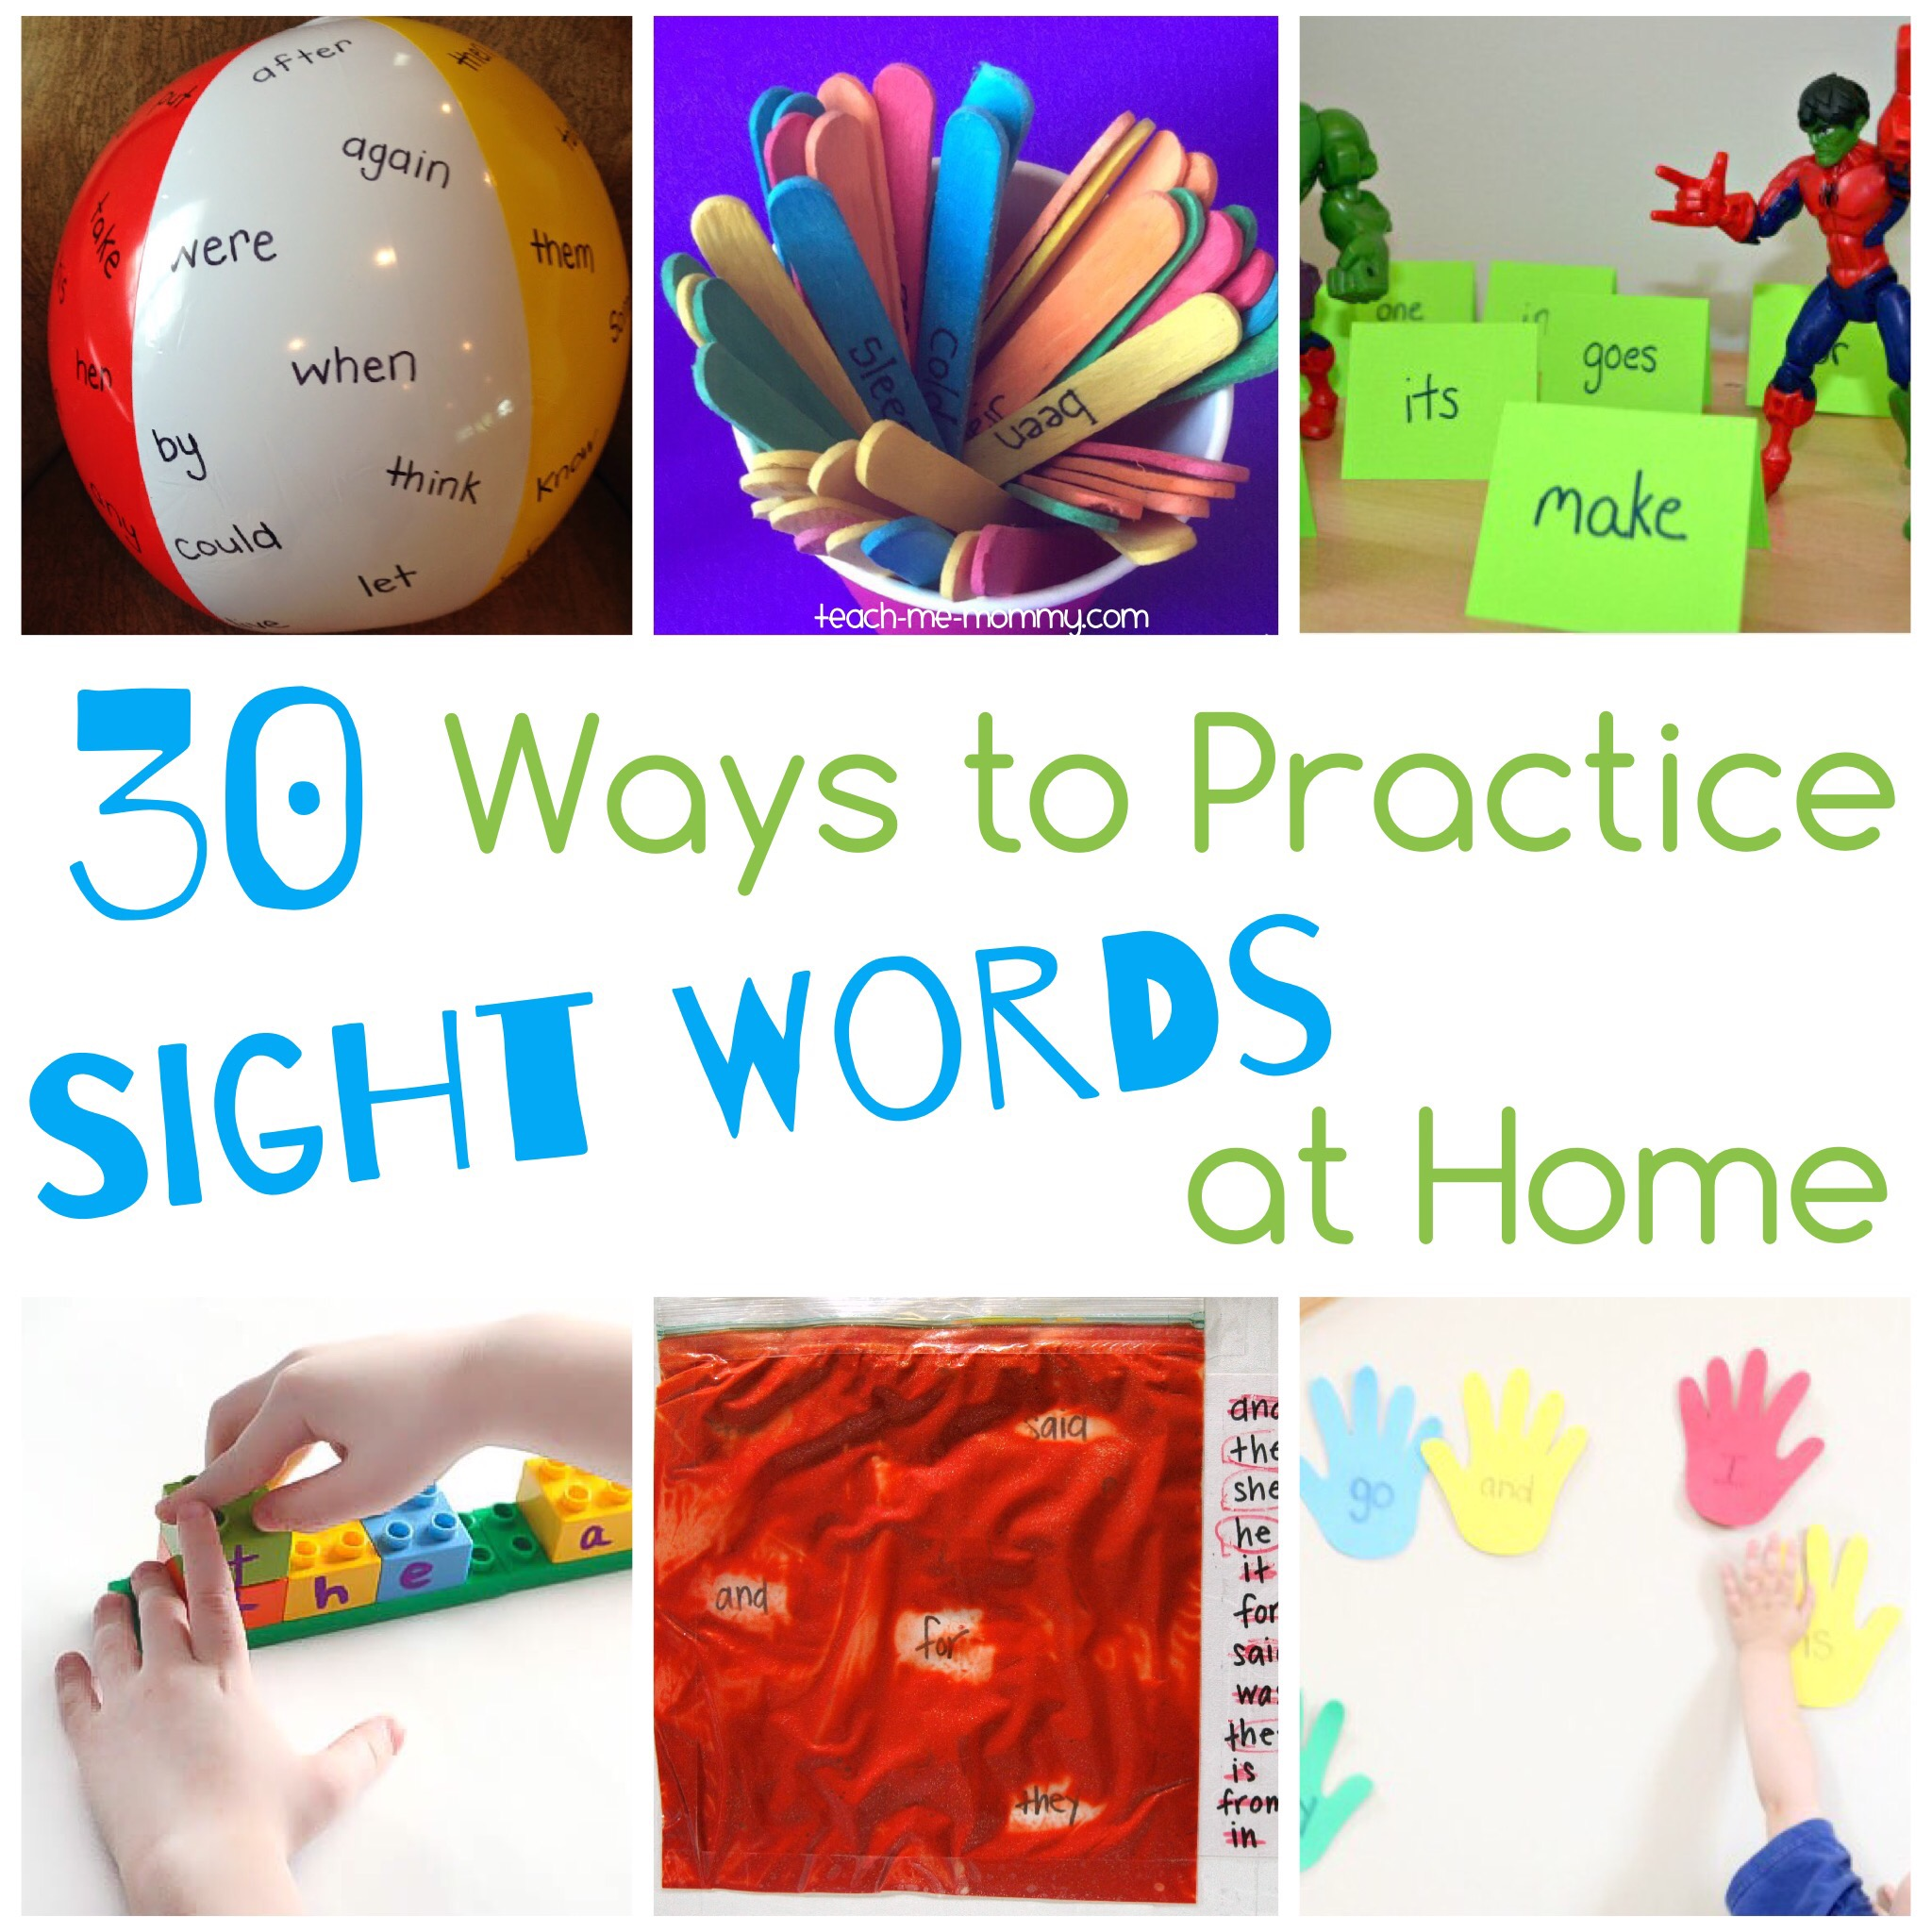 Ways to Practice sight words